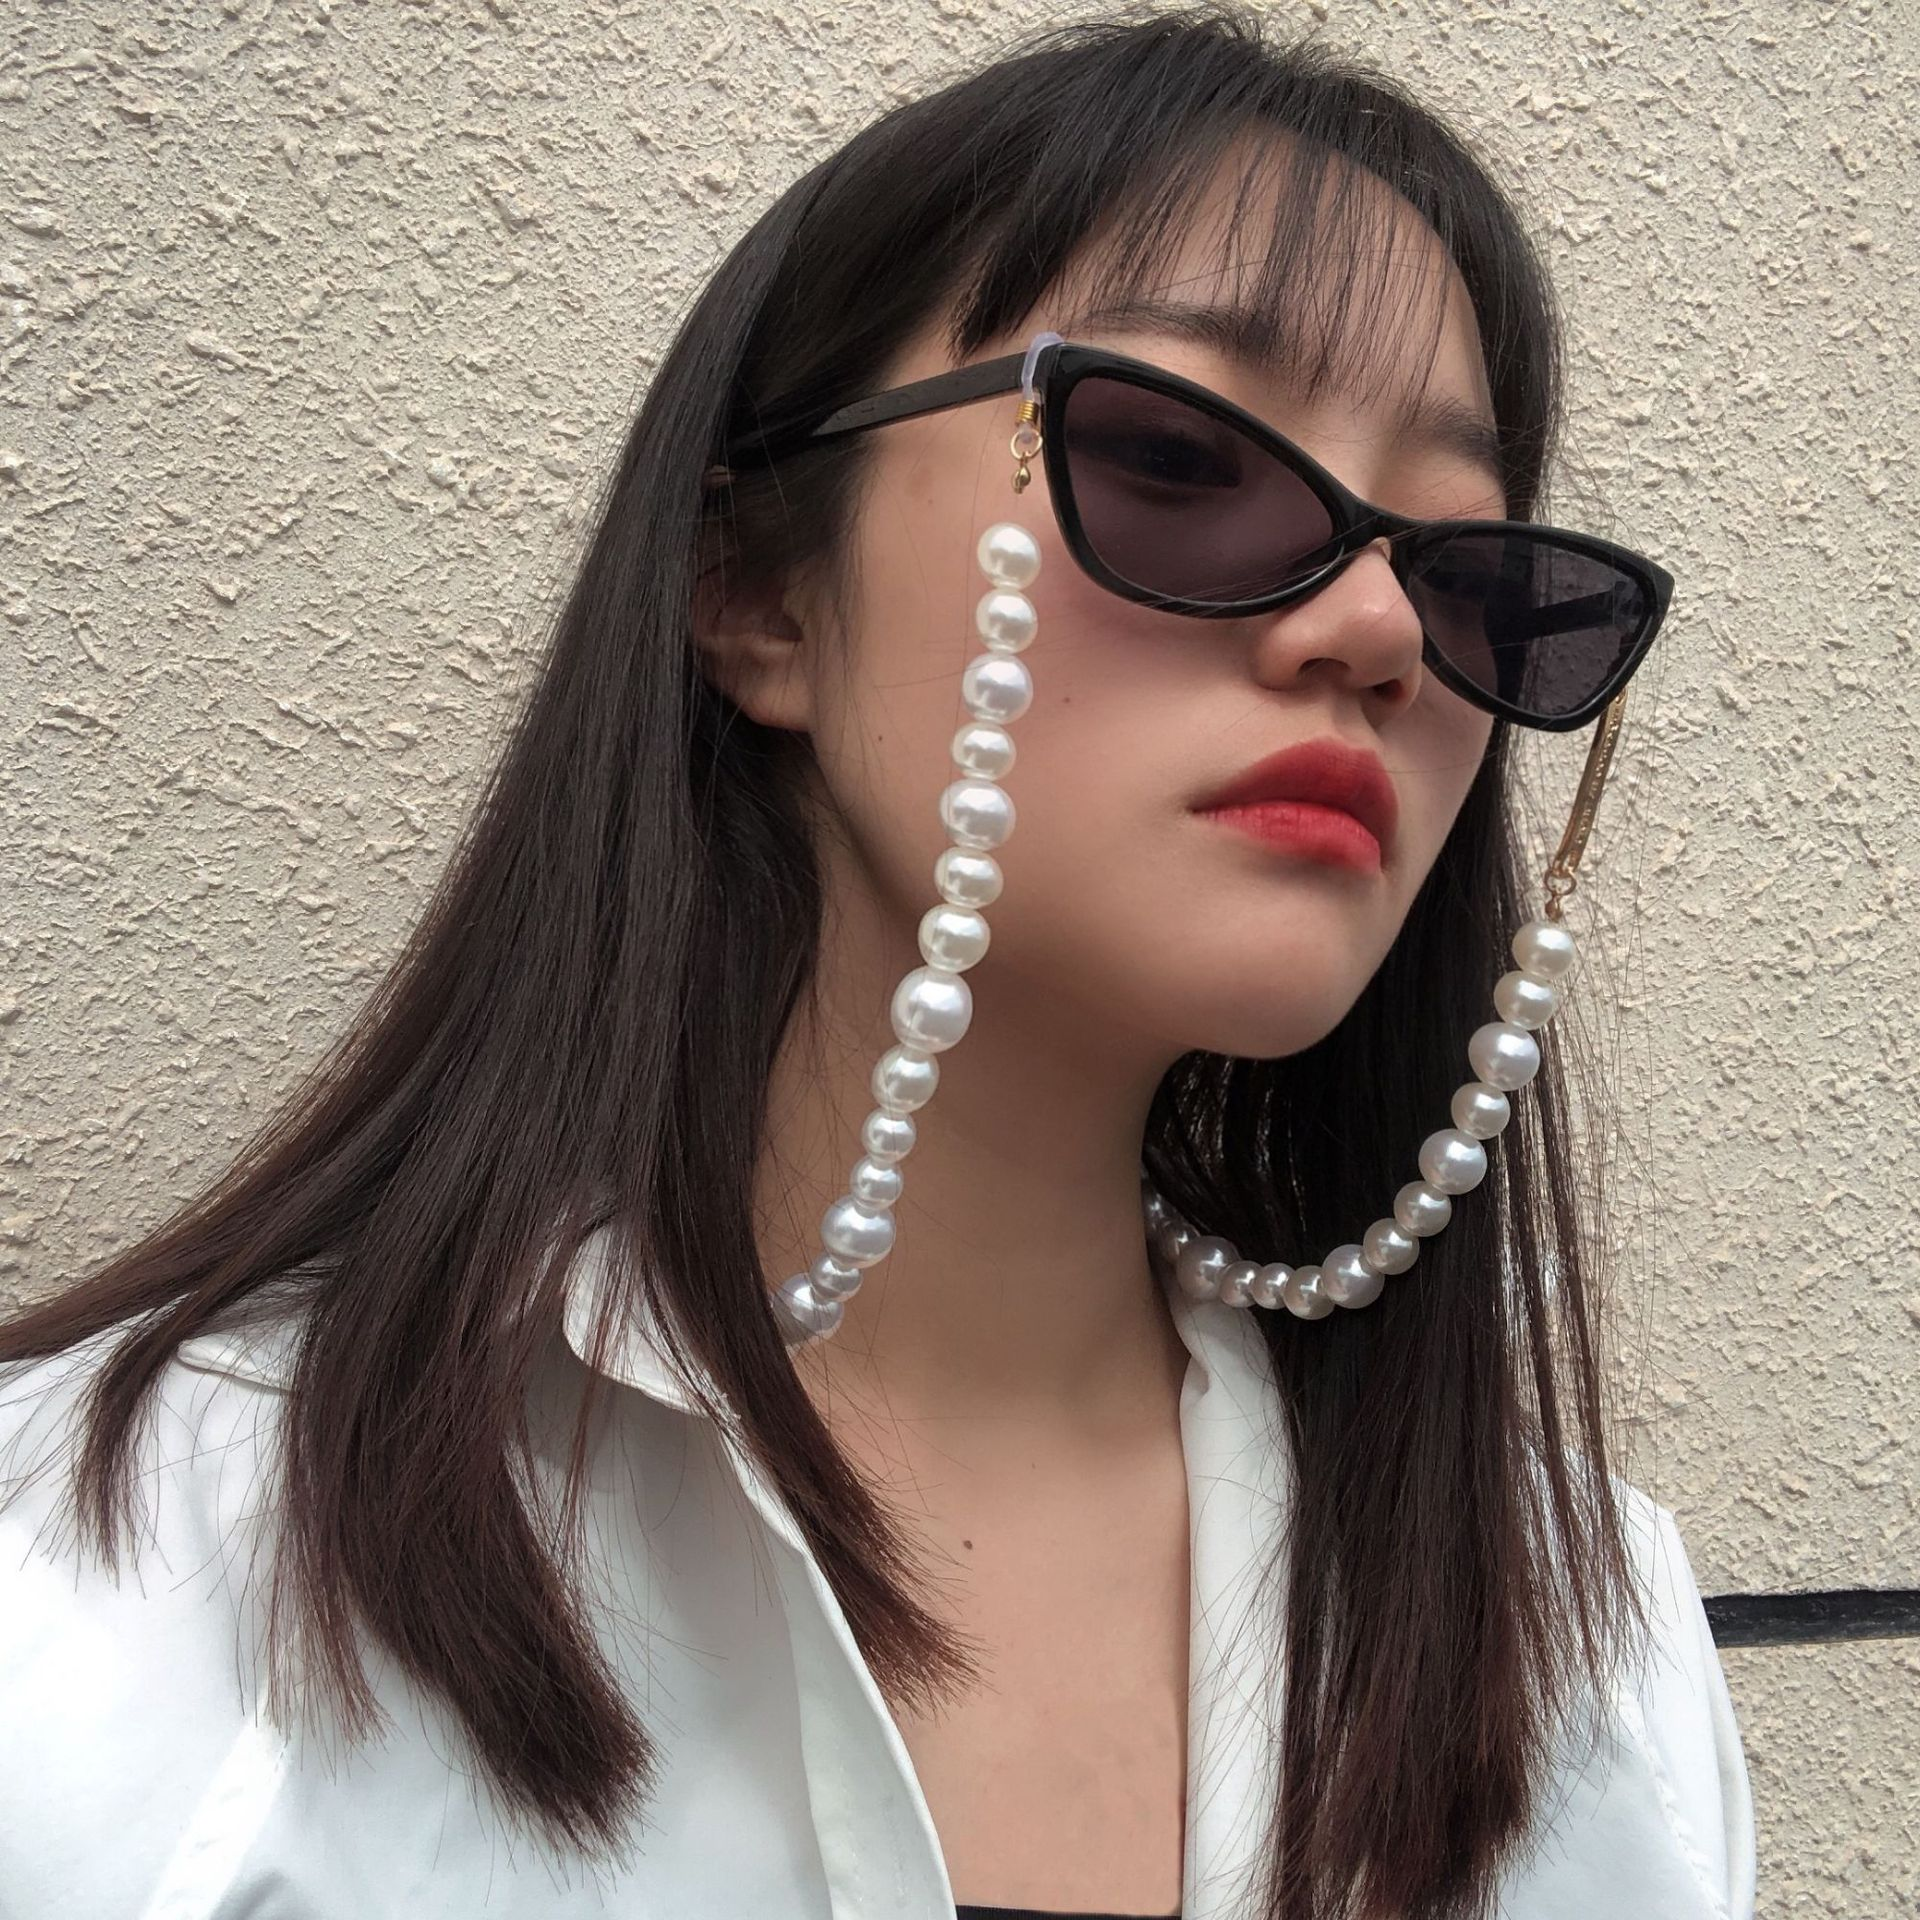 QIMING Water Pearl Lanyard Glasses Chain For Women Strap Cords Fashion Sunglasses Chains Elegant Gla